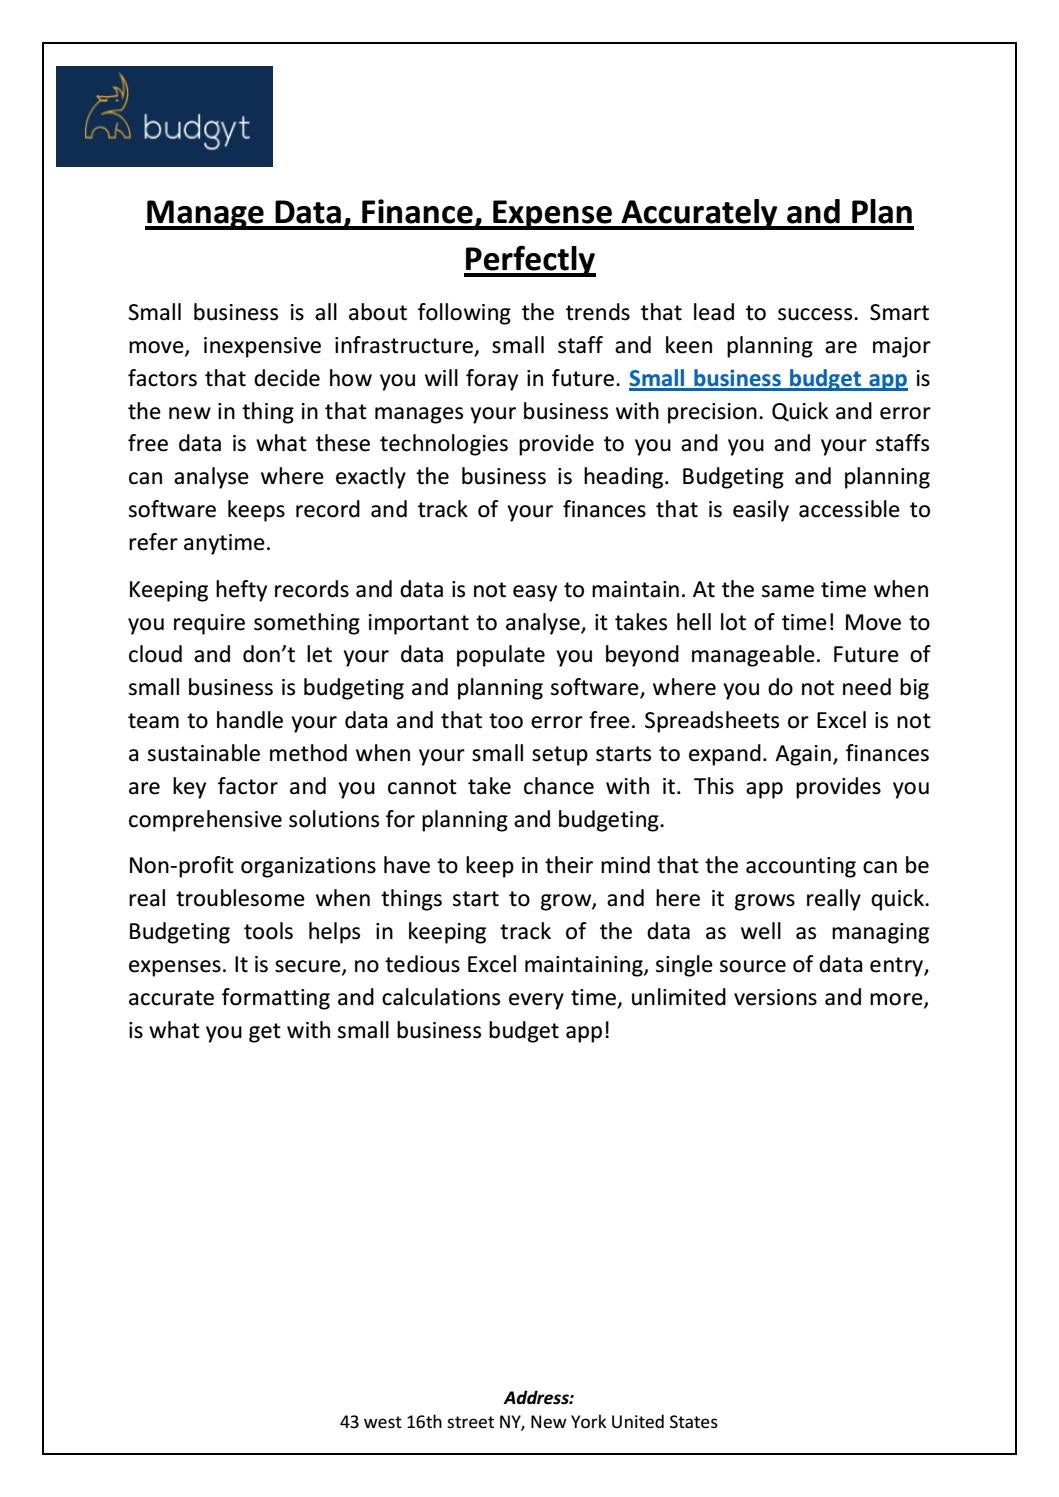 small business budget app by budgyt issuu